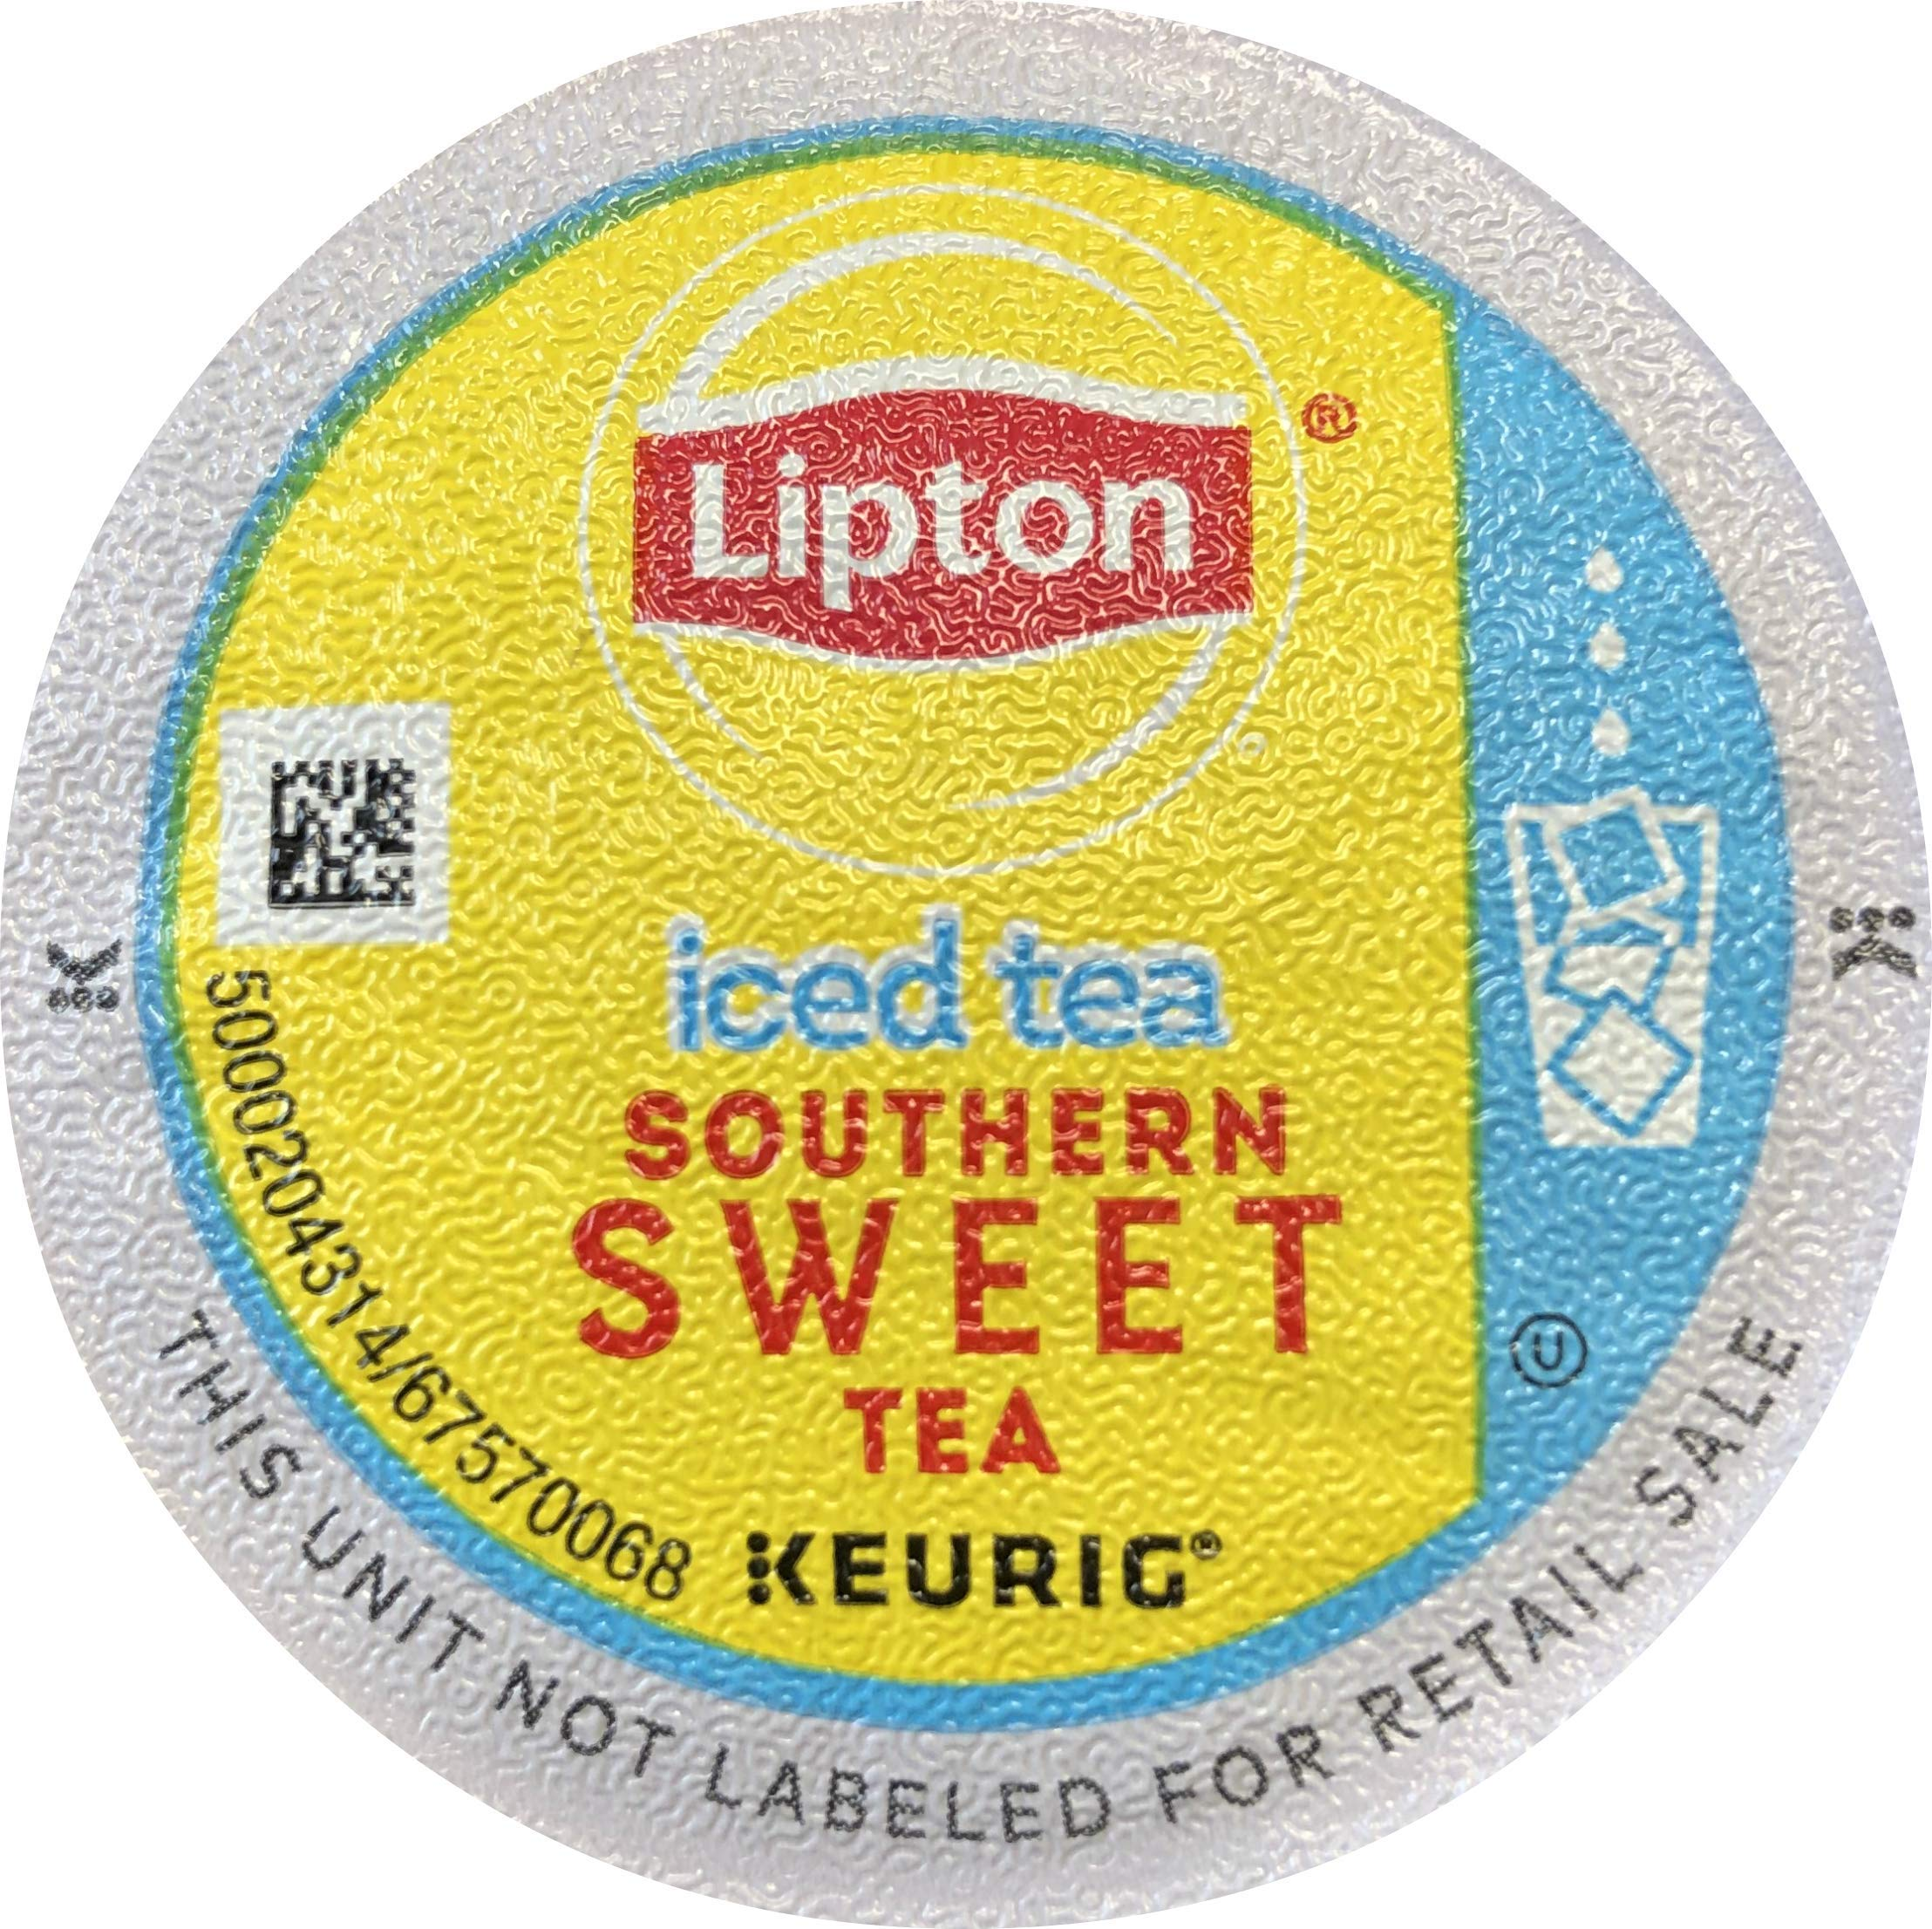 Lipton Iced Southern Sweet Tea single serve pods for Keurig K-Cup pod brewers, 88 Count by Lipton